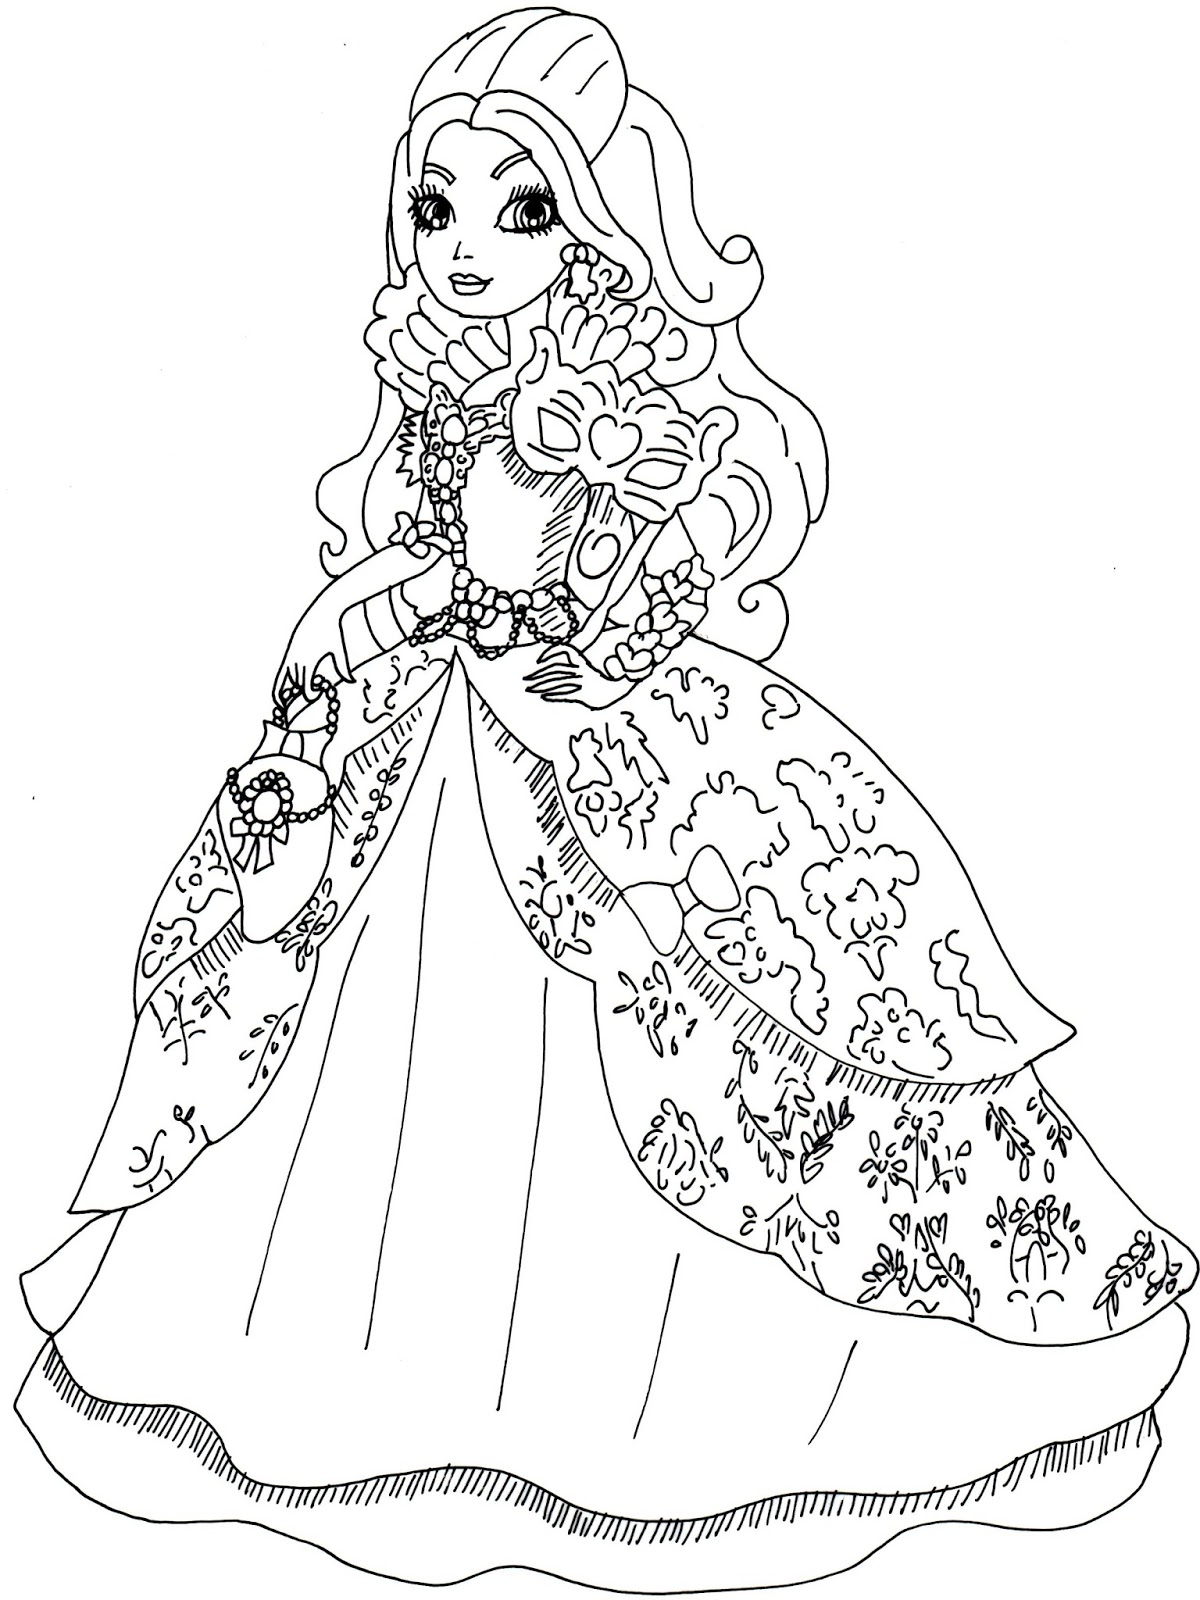 Coloring Pages Apple White : Free printable ever after high coloring pages apple white